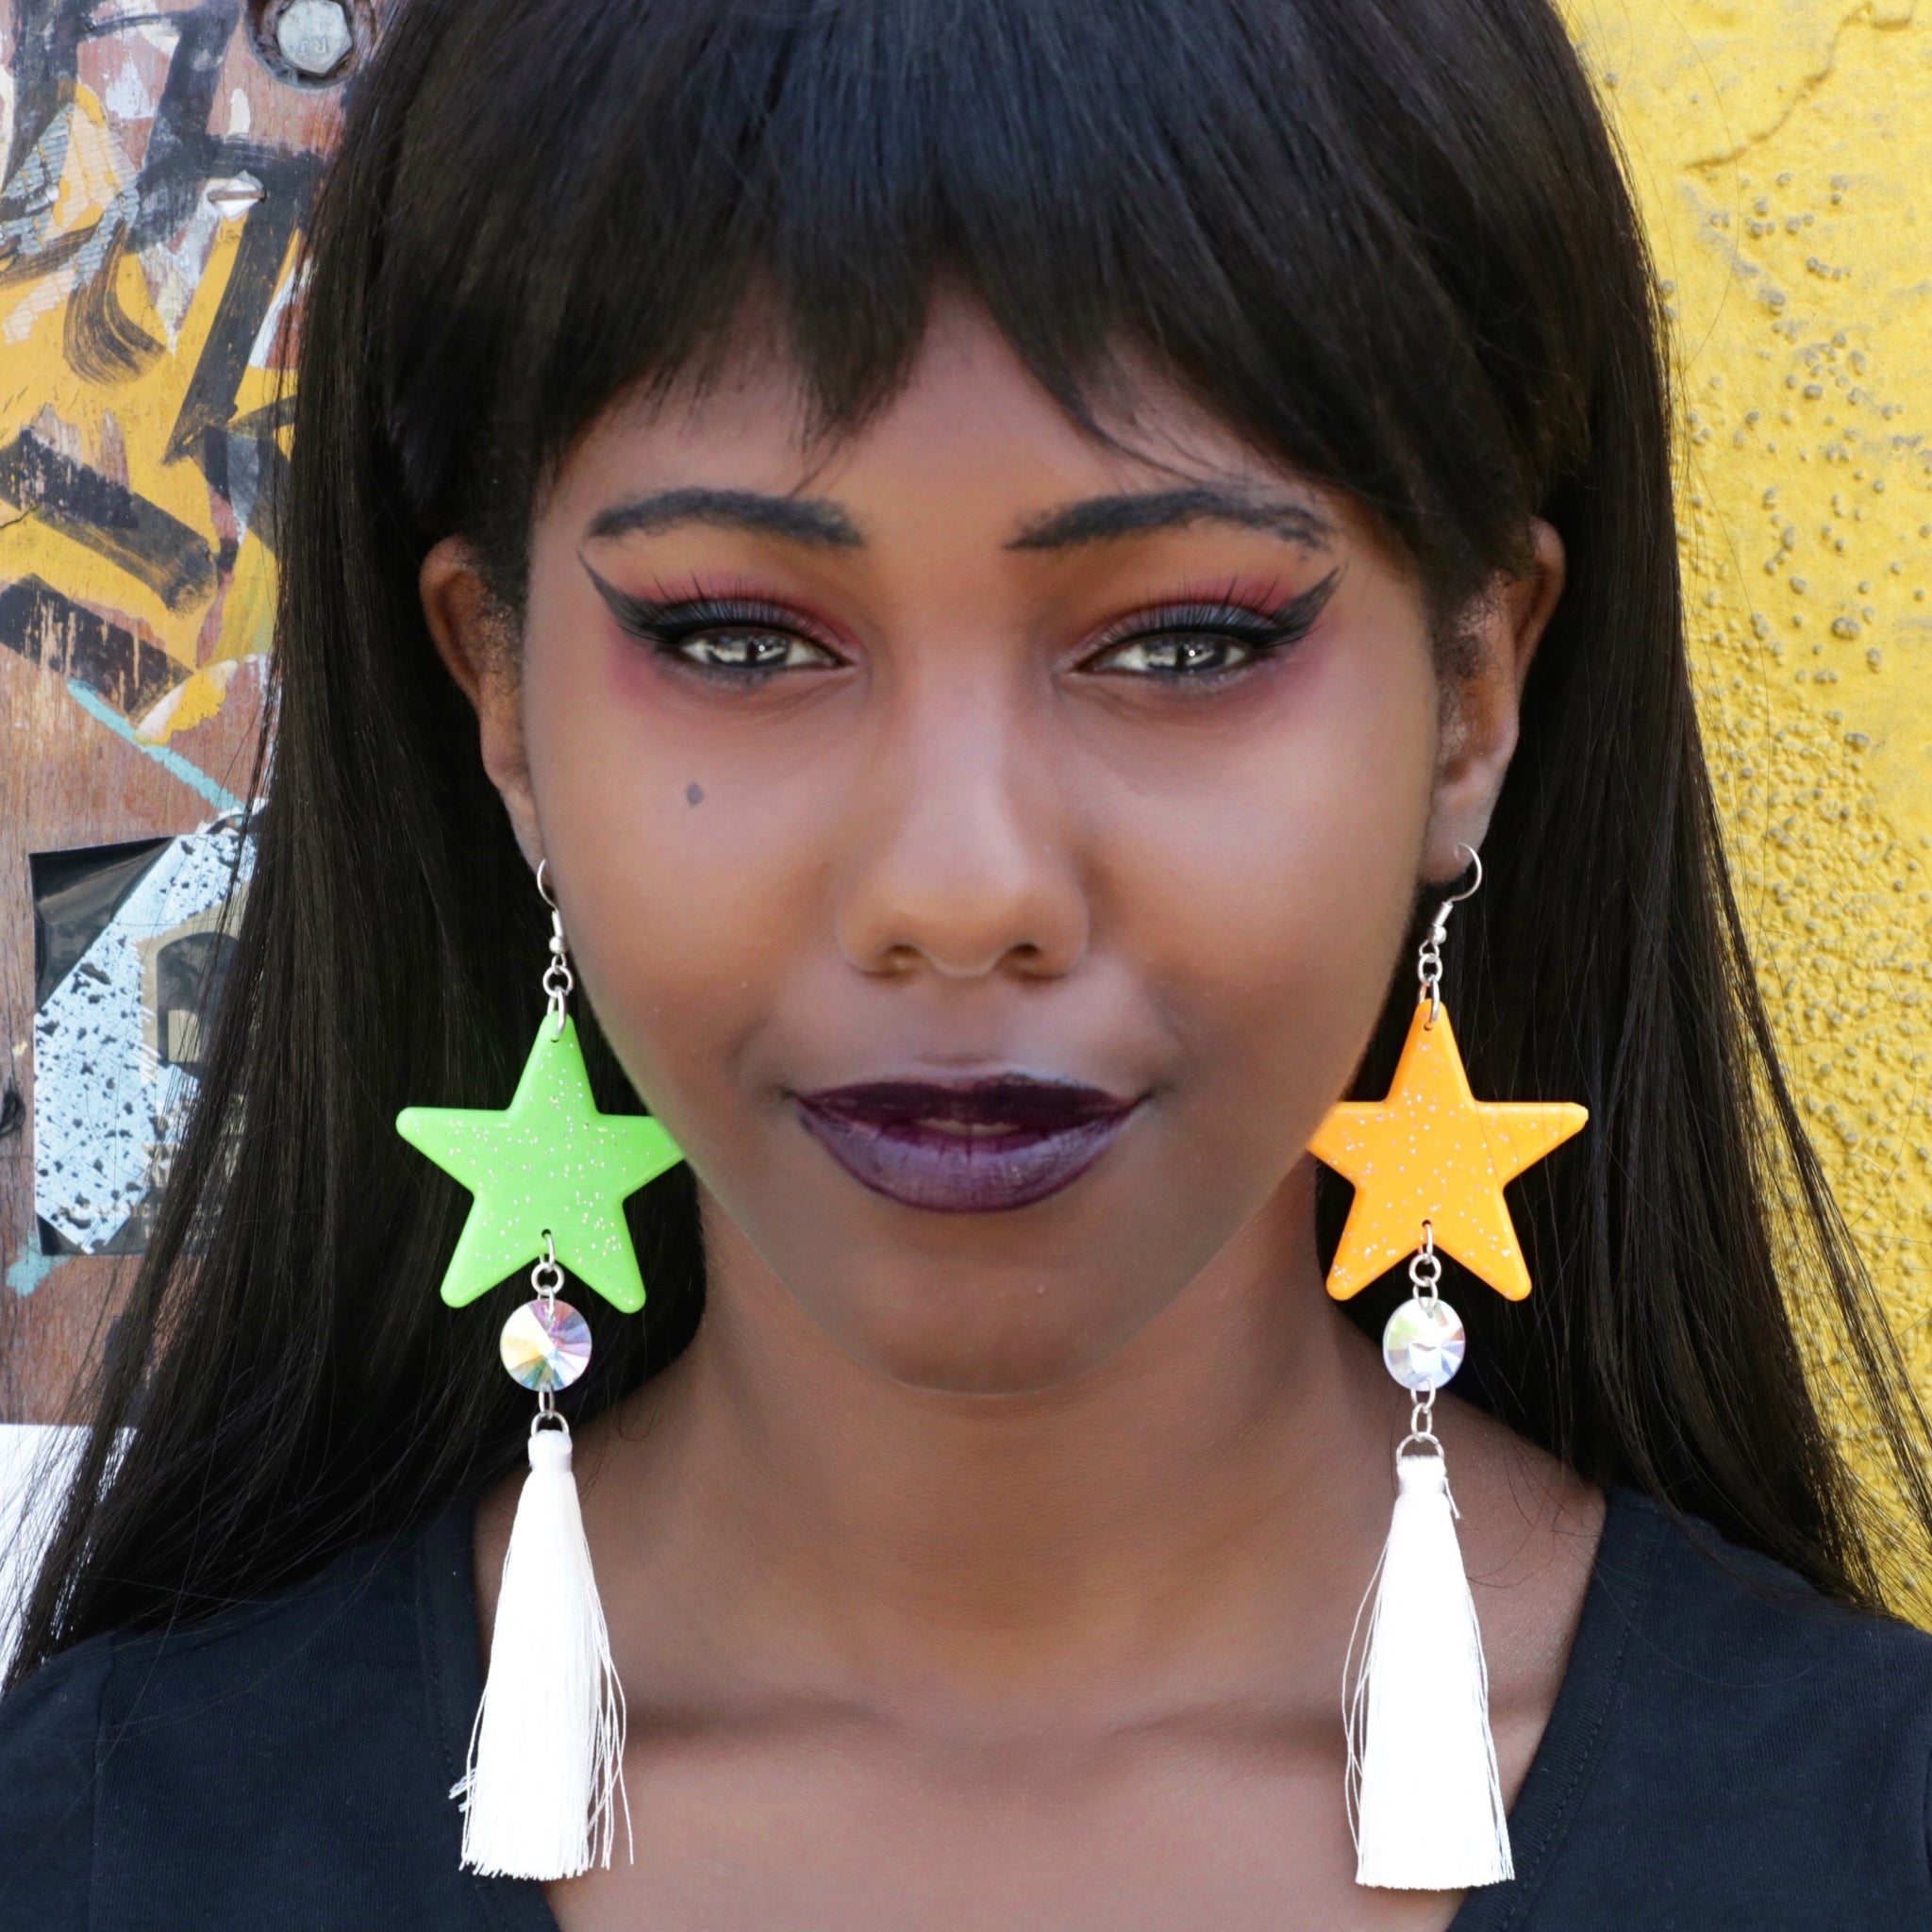 Star Earrings w/ Jewel and Tassel